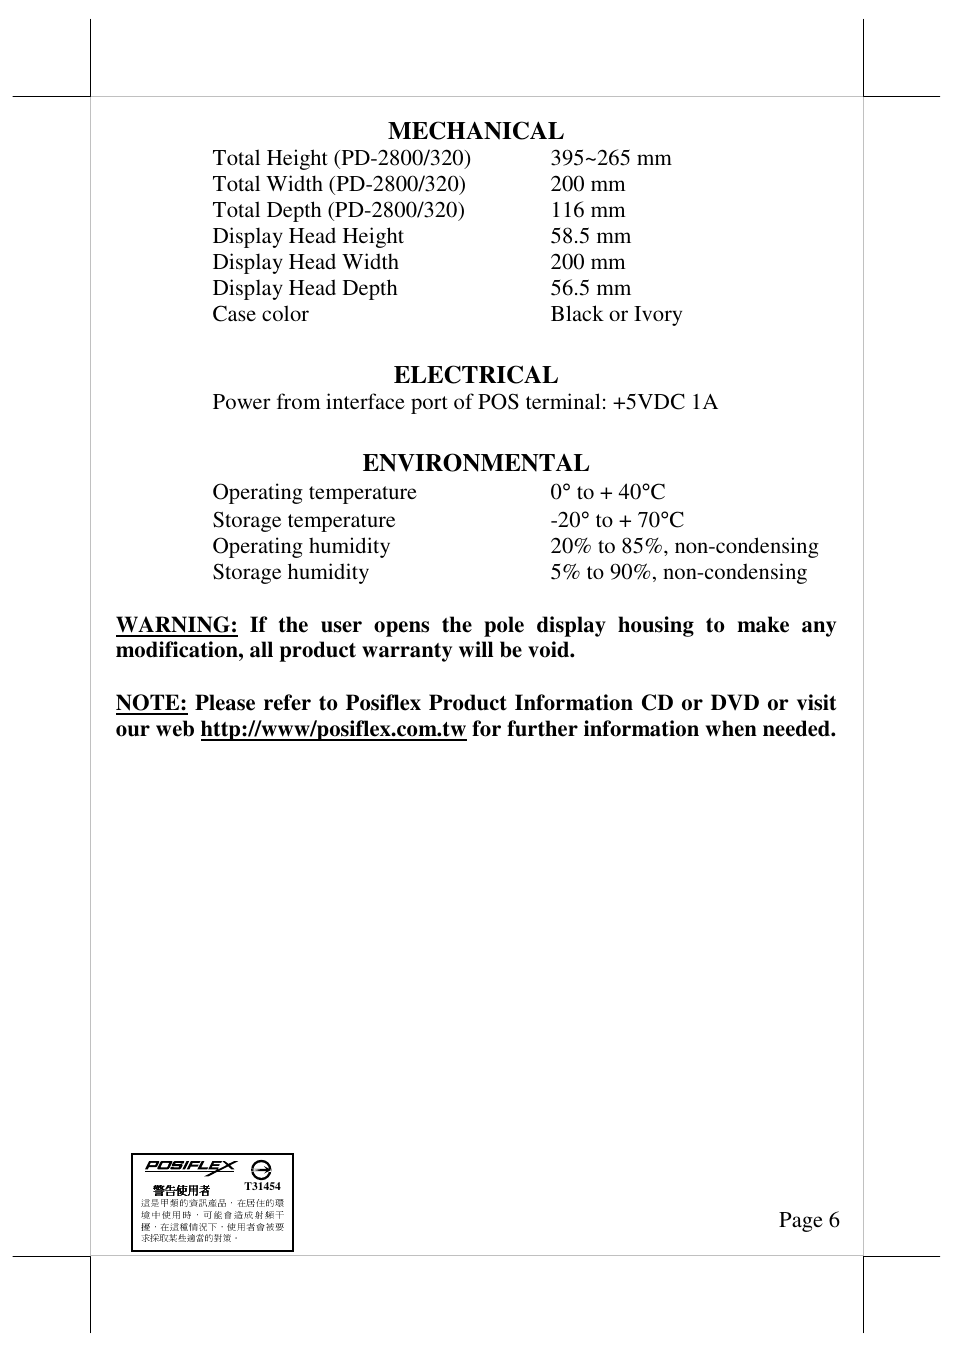 Mechanical Electrical Environmental | Posiflex PD-2800UE User Manual | Page 7 /  sc 1 st  manualsdir.com & Mechanical Electrical Environmental | Posiflex PD-2800UE User ...